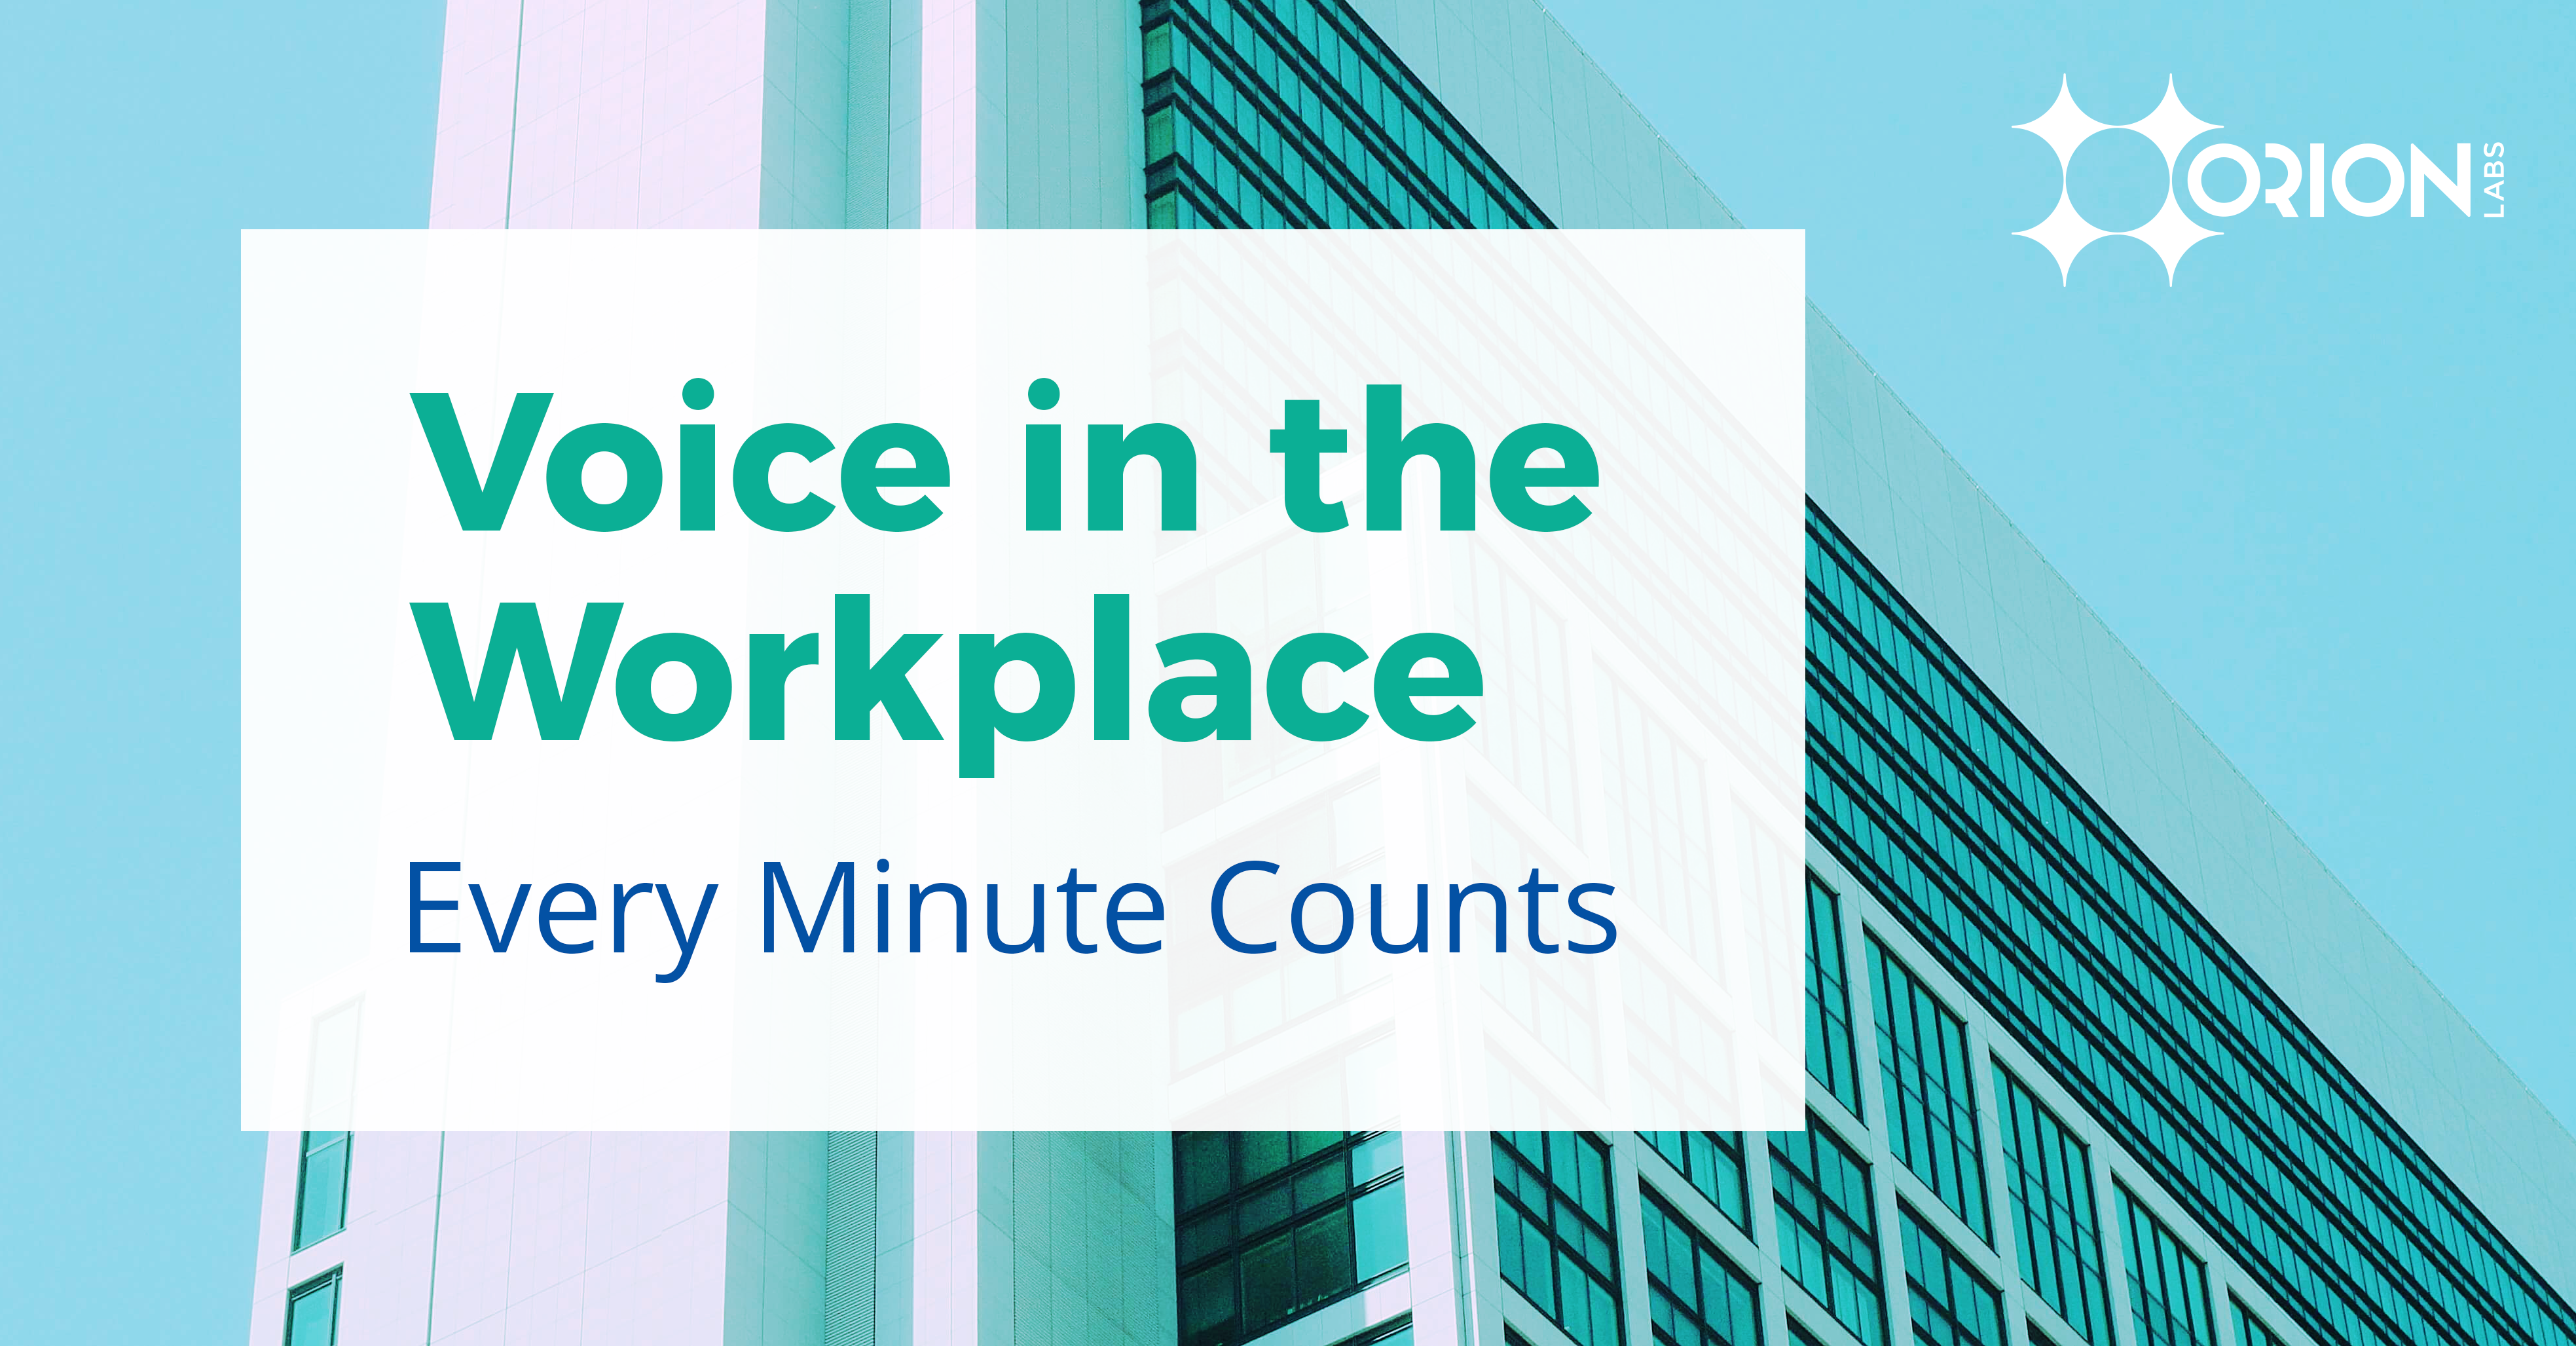 Voice in the Workplace - How businesses are using voice solutions